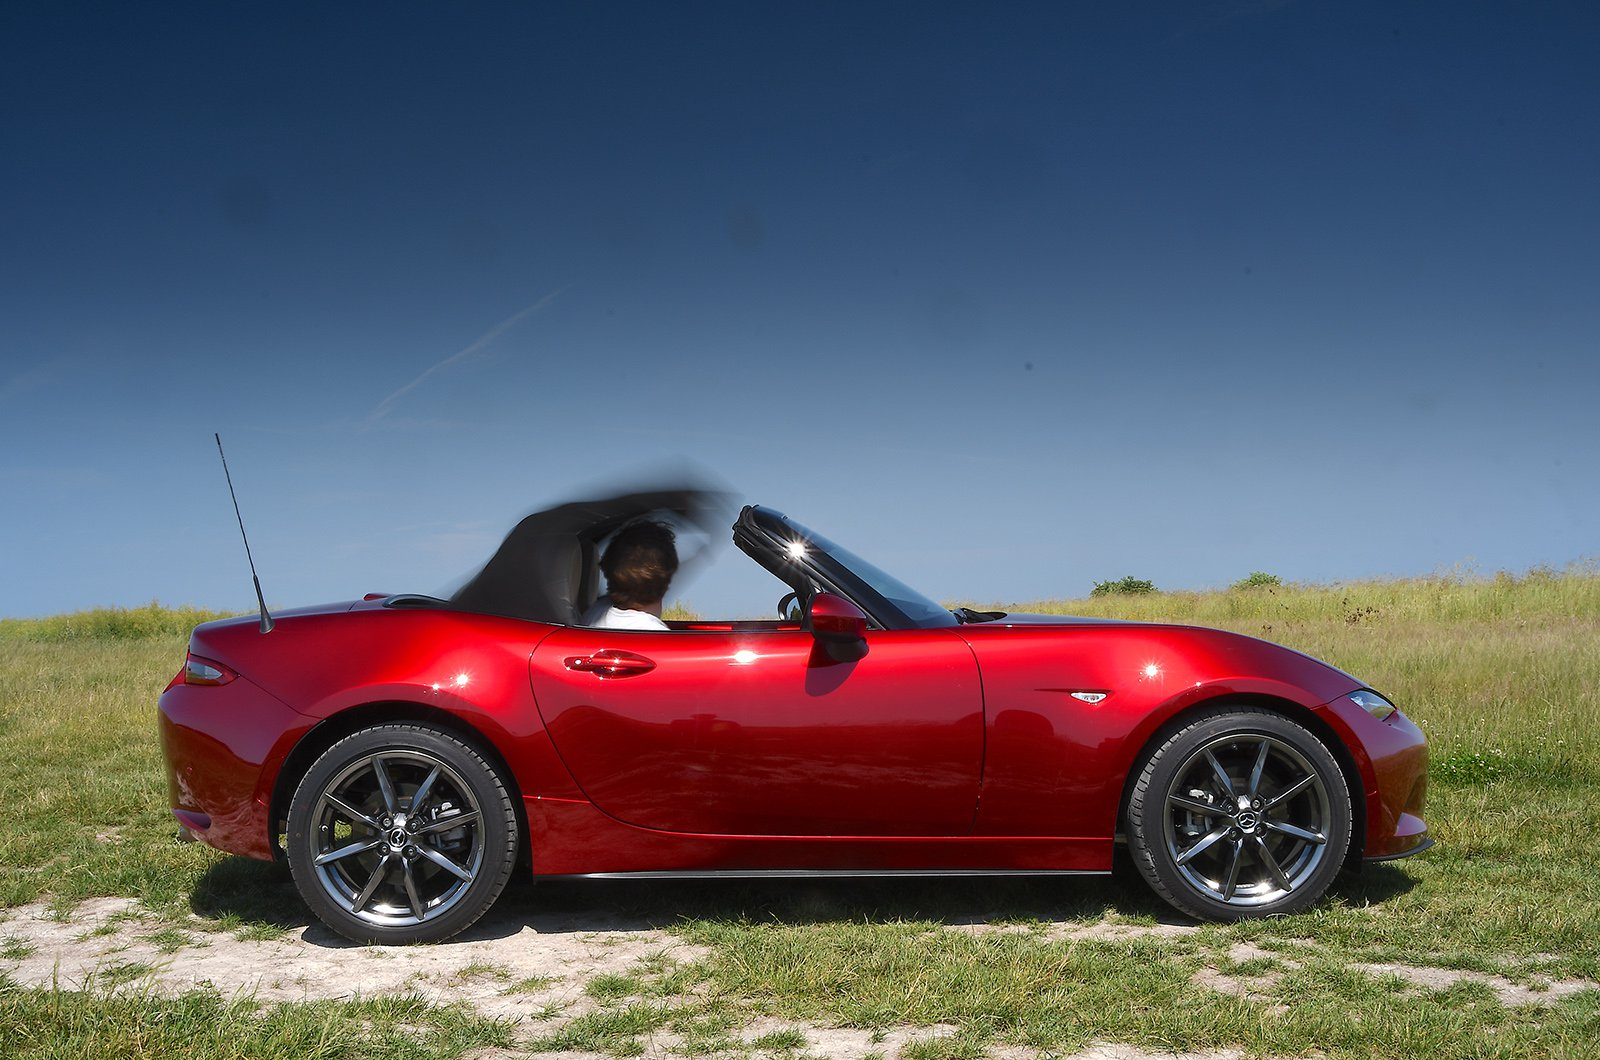 Used Mazda MX-5 long-term blurred hood in action